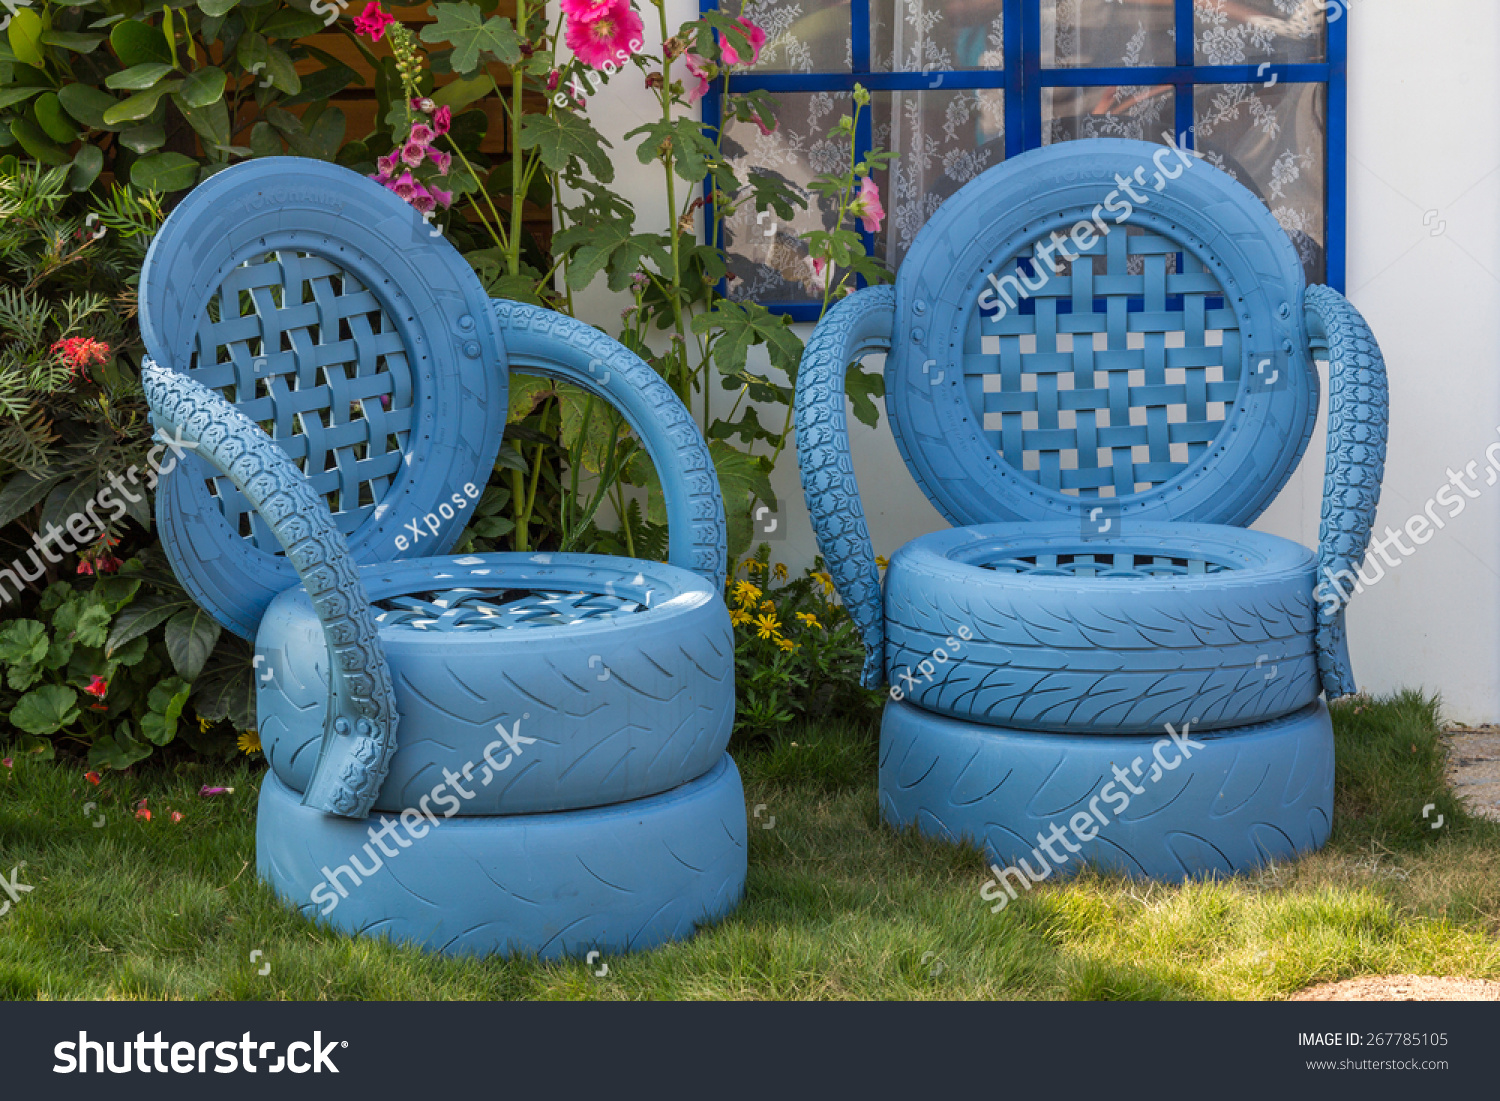 Hong Kong Mar 20 2014 Garden Chairs Made From Recycled